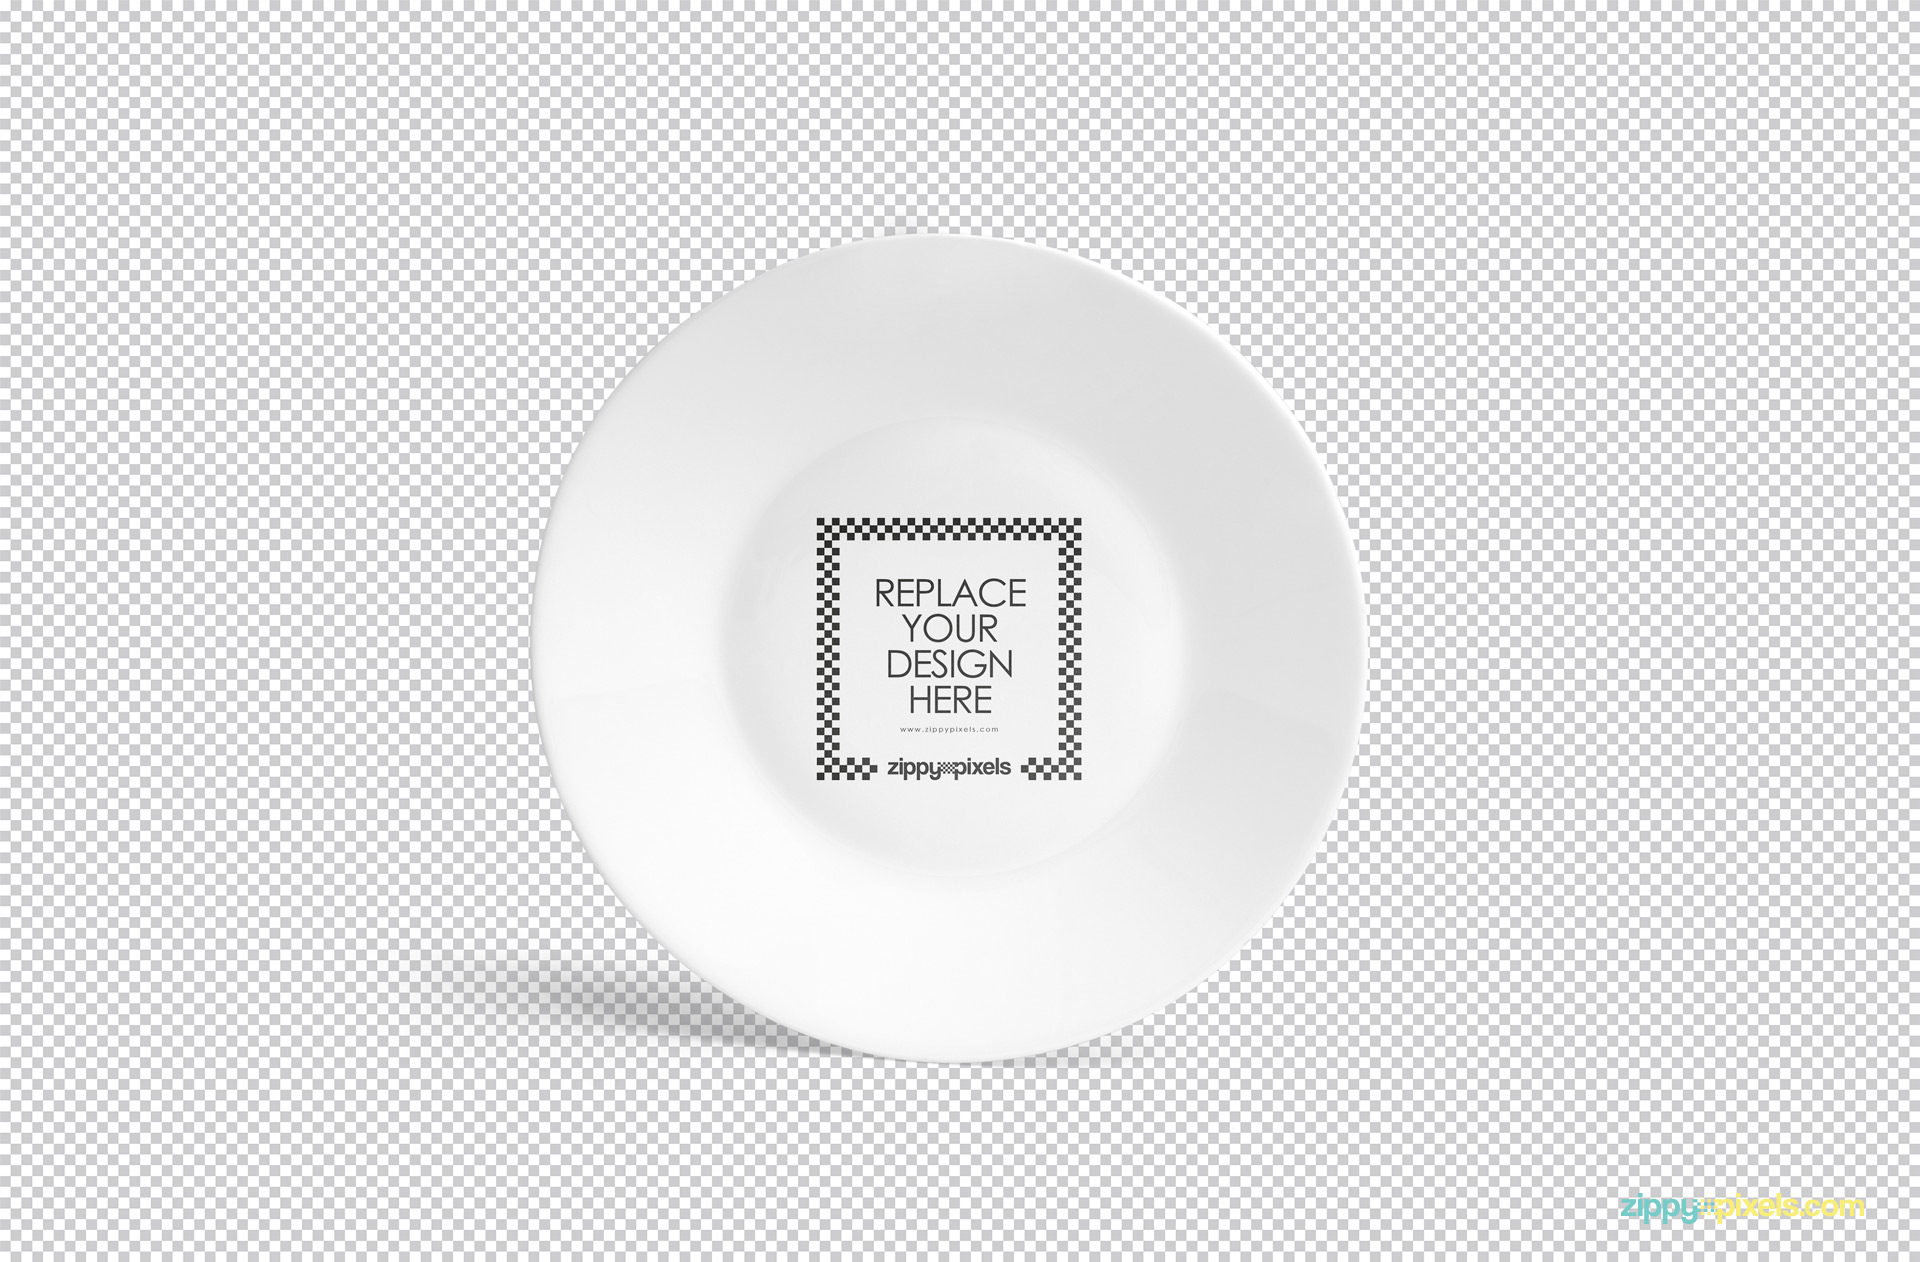 Use Photoshop to customize this free white plate mockup.